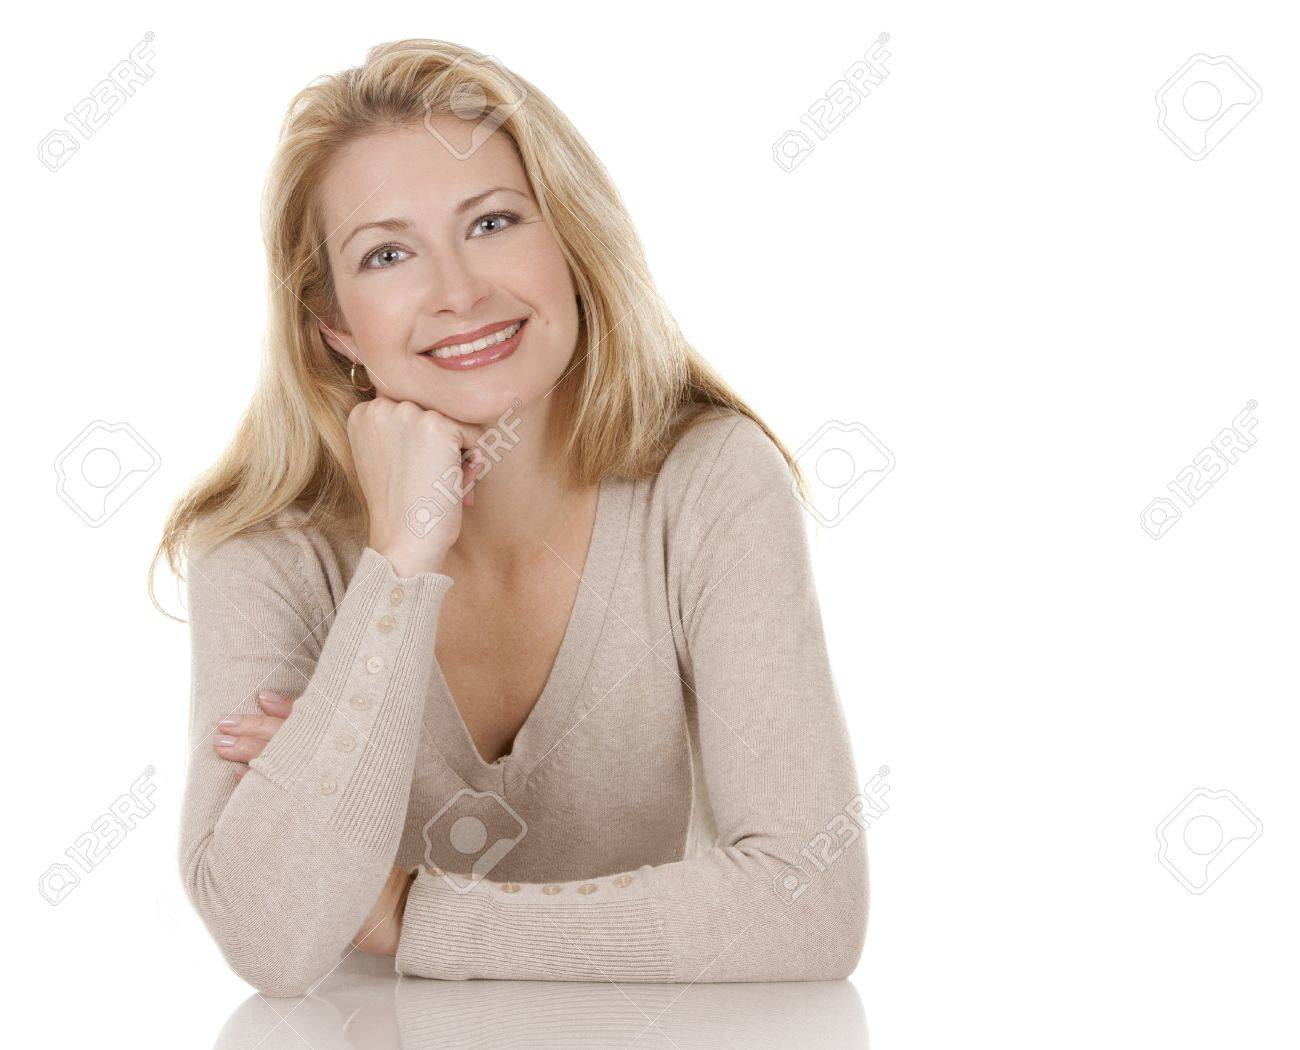 pretty blond woman wearing beige top sitting on white background Stock Photo - 15814954